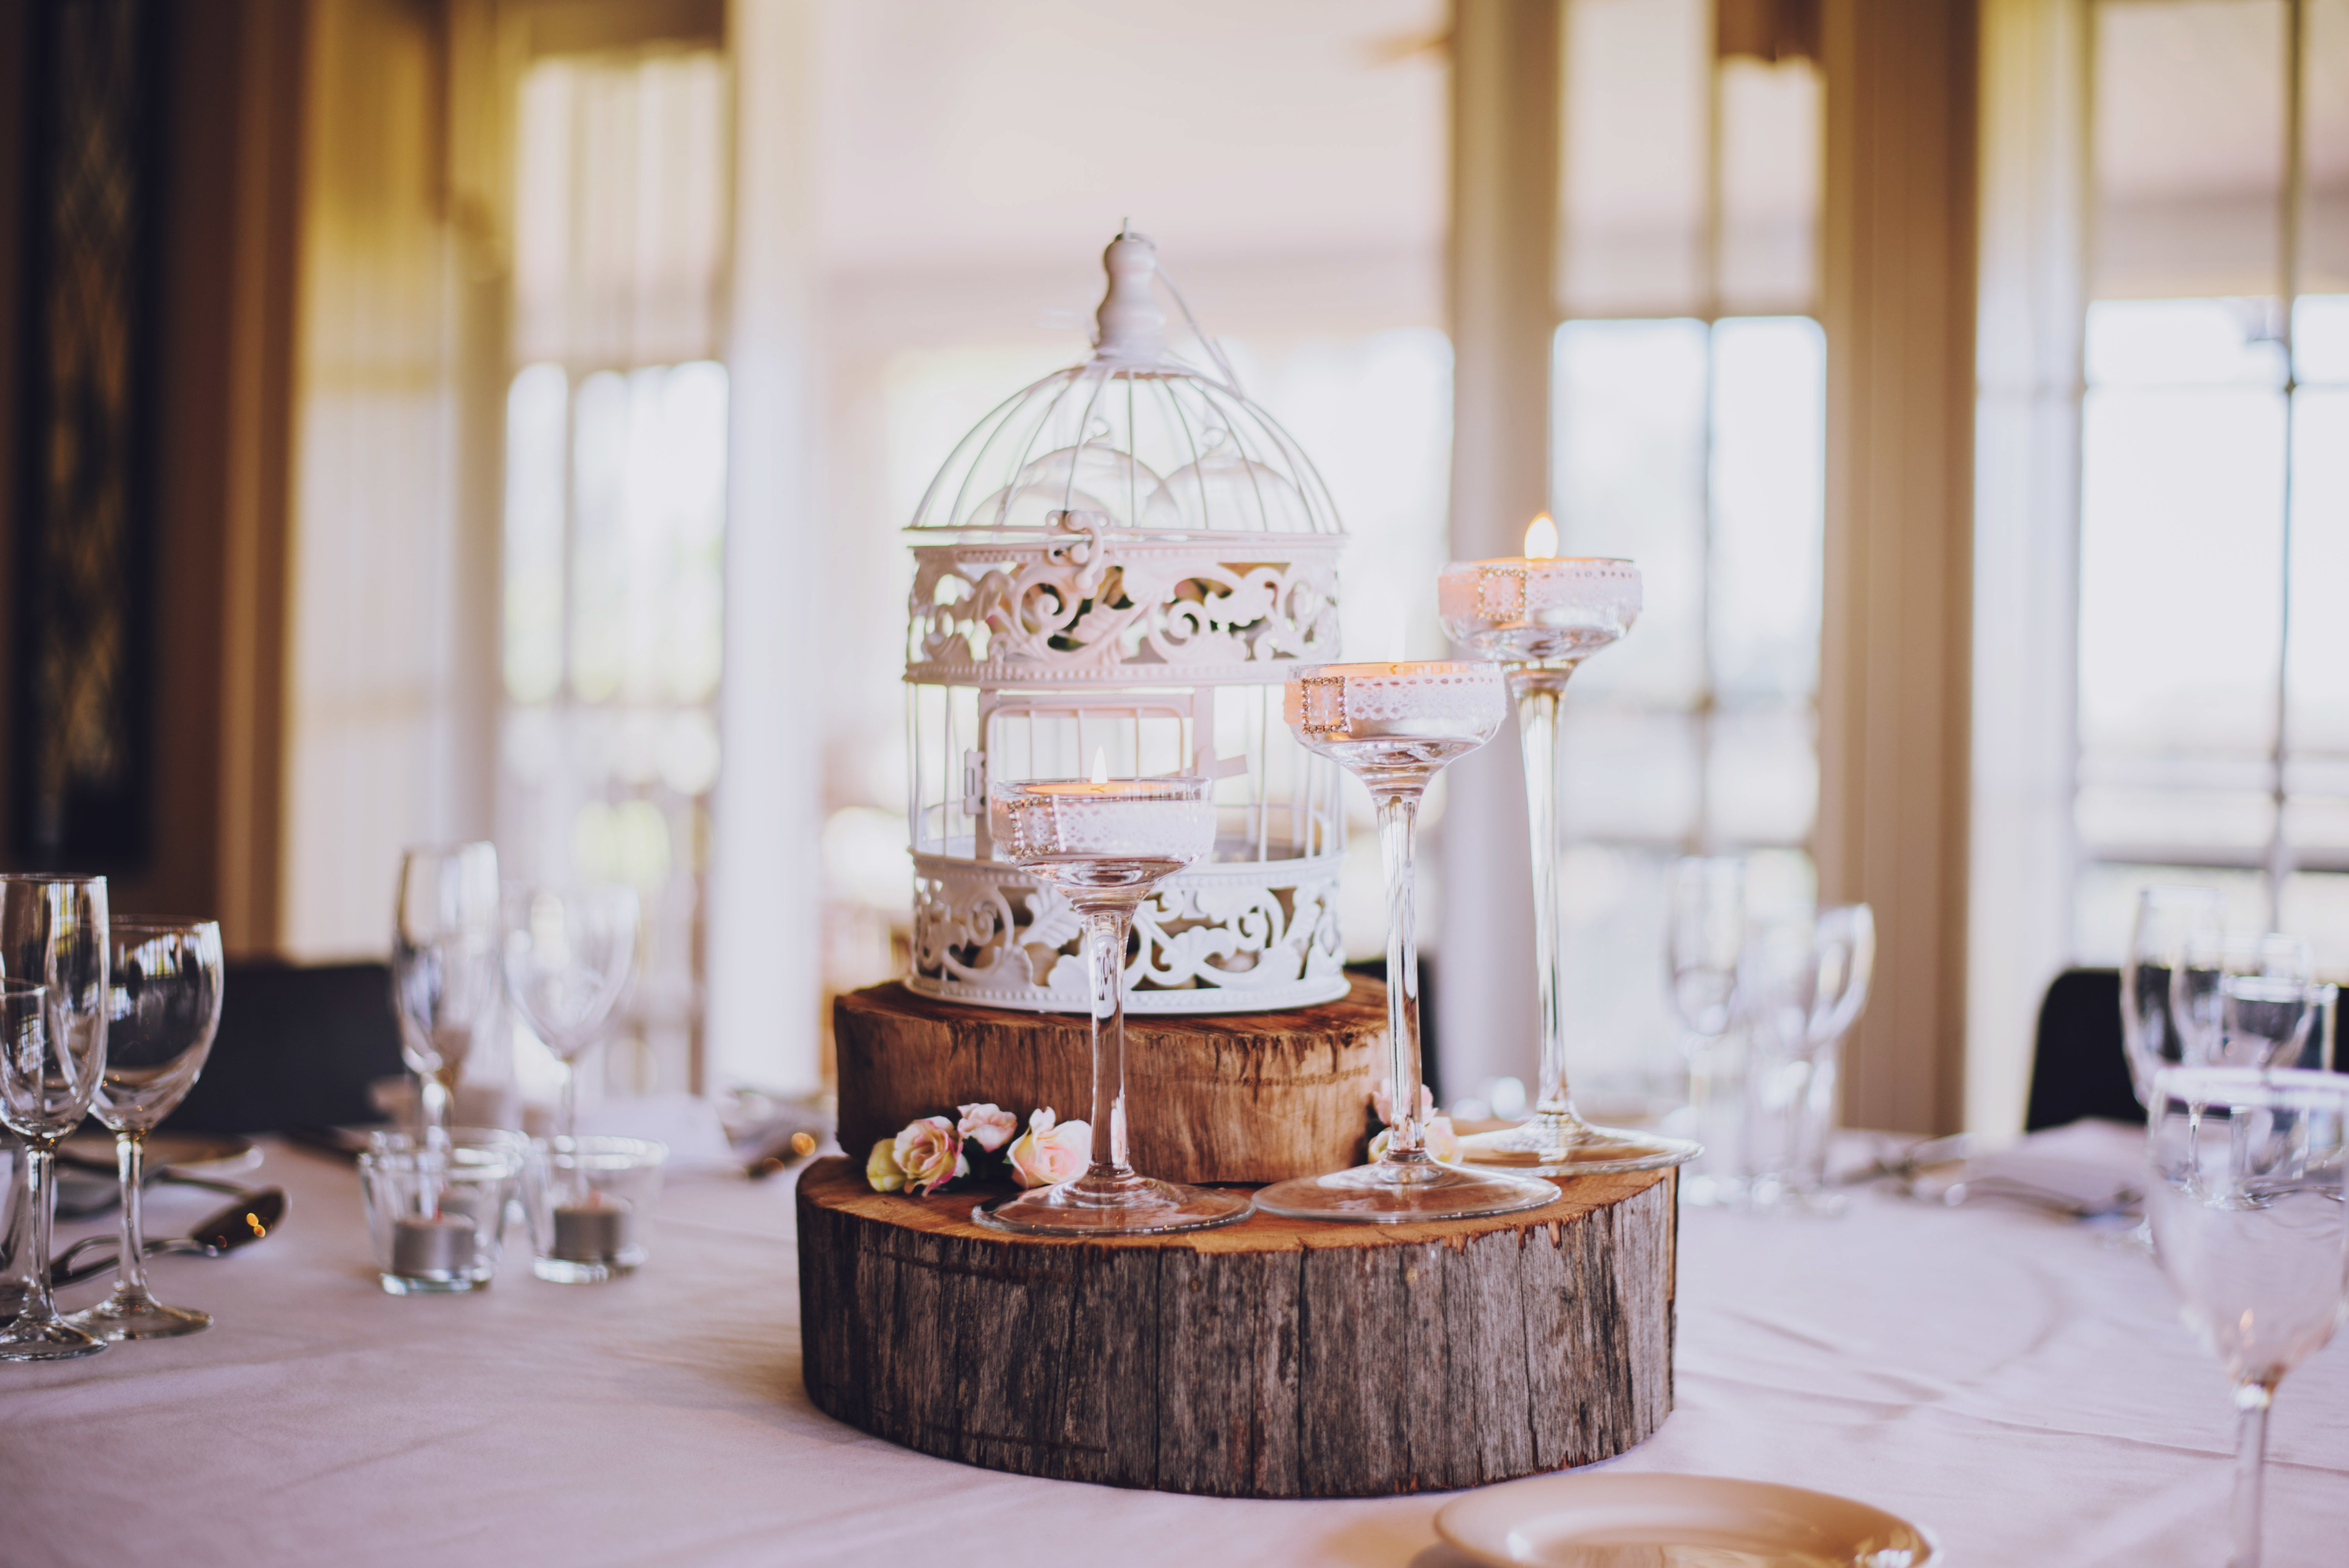 Luxury Rustic Centerpieces For Weddings Image Collection - The ...